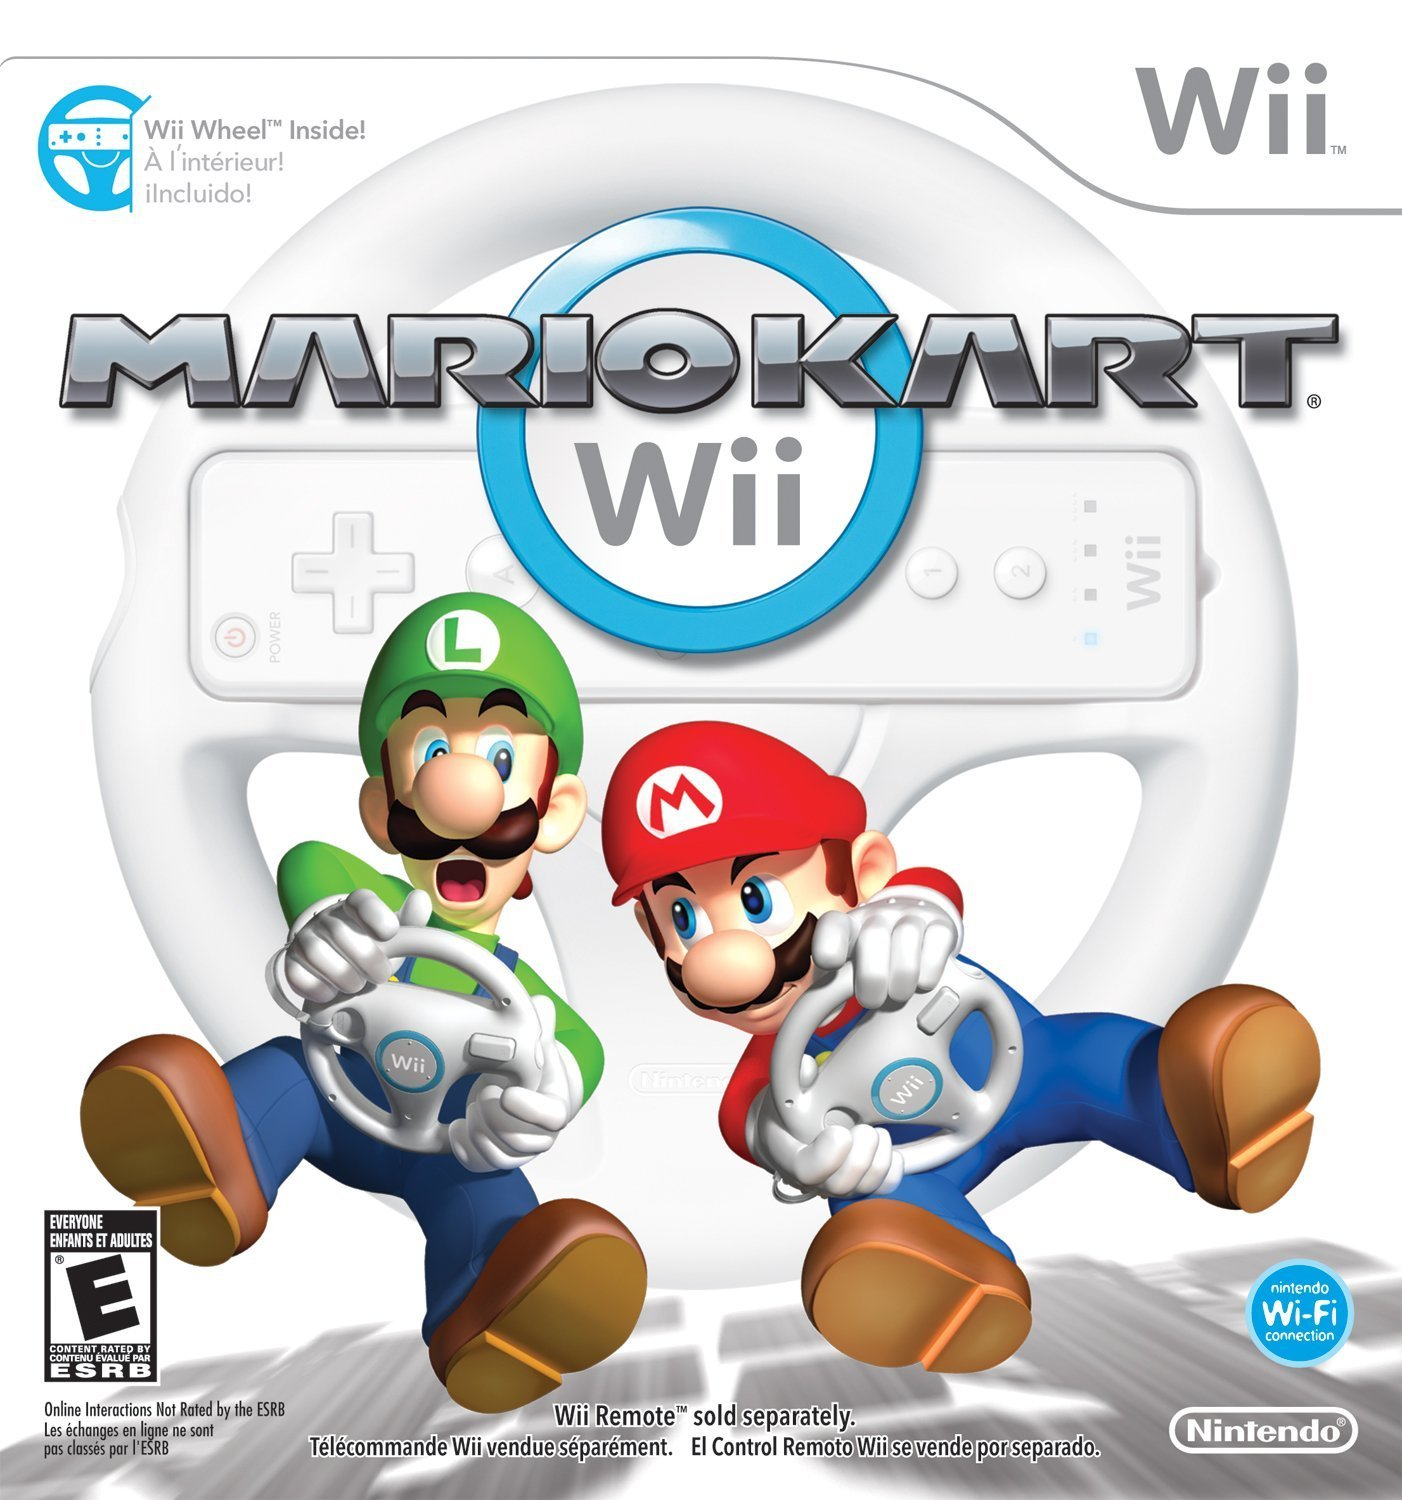 Mario Kart Wii with Wii Wheel product image